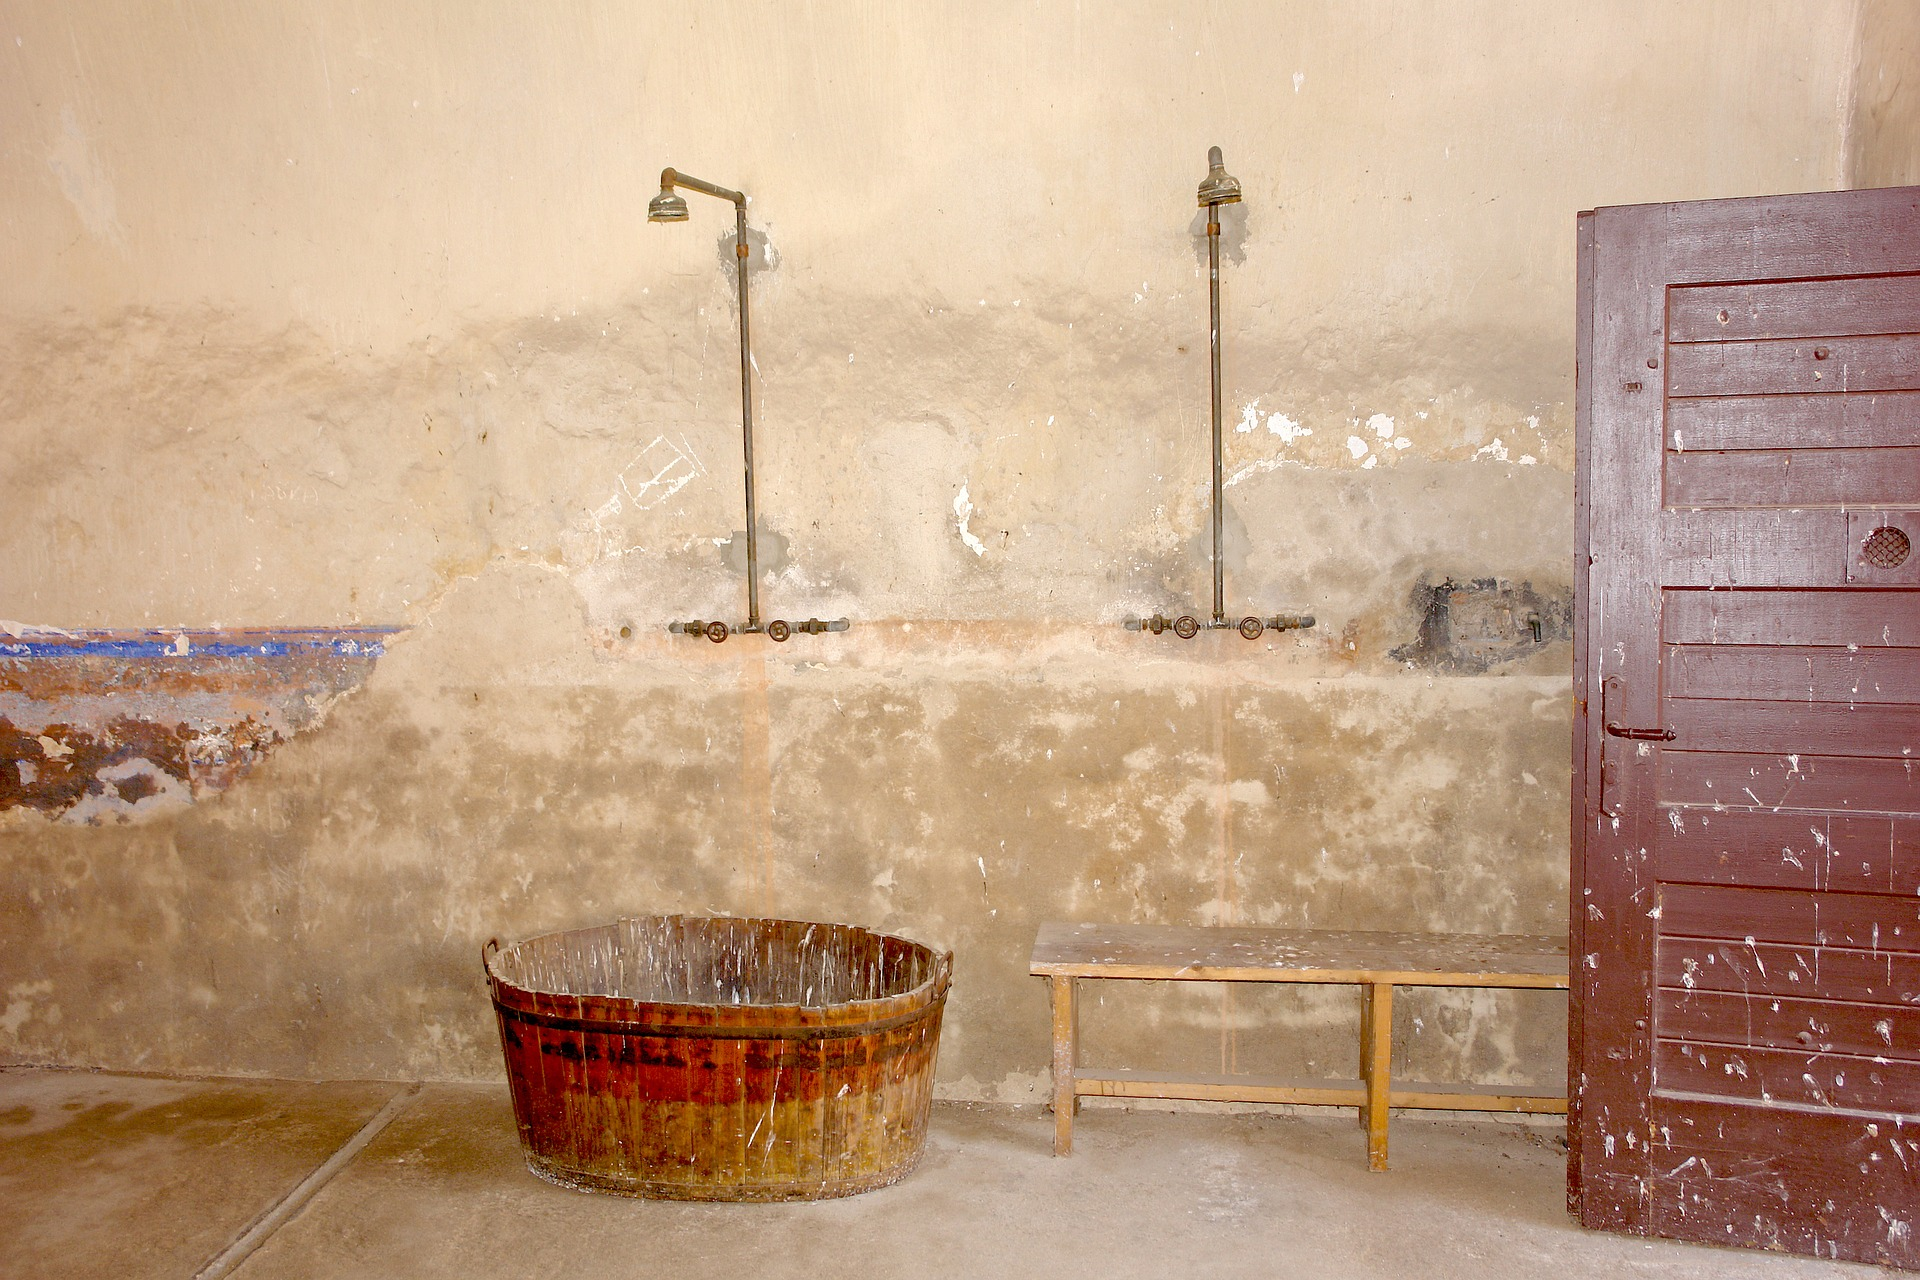 Showers once used in the Terezín concentration camp, north of Prague, northern Czech Republic.